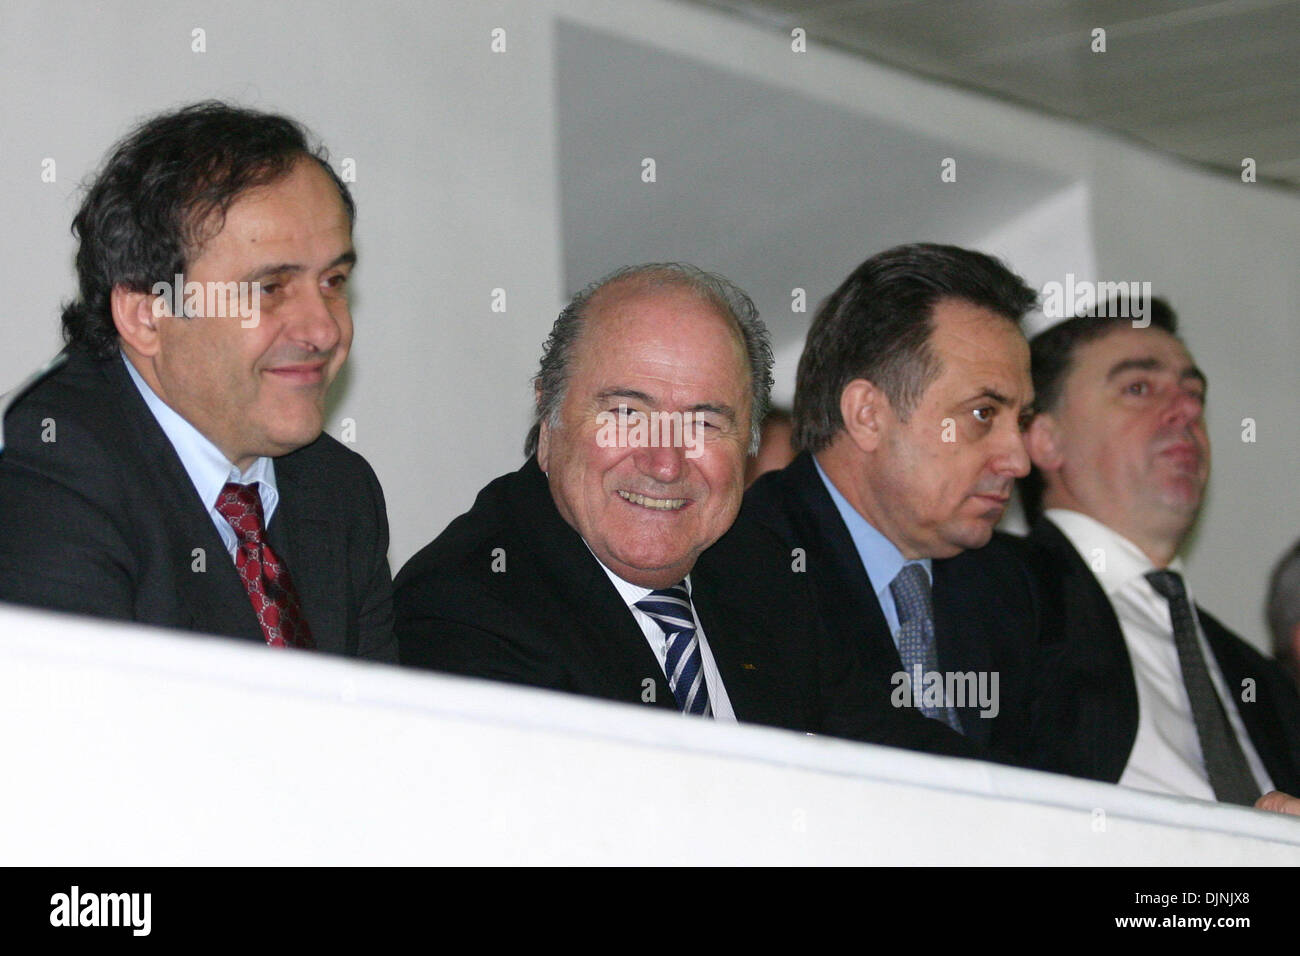 Apr 30, 2008 - St. Petersburg, Russia - The 2008 UEFA Champions League Final will be played on 21 May 2008 at the Luzhniki Stadium in Moscow, Russia. Pictured: FILE January 2008, (L-R) UEFA President MICHEL PLATINI, FIFA President JOSEPH BLATTER, Russian Football Unity VITALY MUTKO visiting St.Petersburg. (Credit Image: © PhotoXpress/ZUMA Press) RESTRICTIONS: * North and South Amer - Stock Image